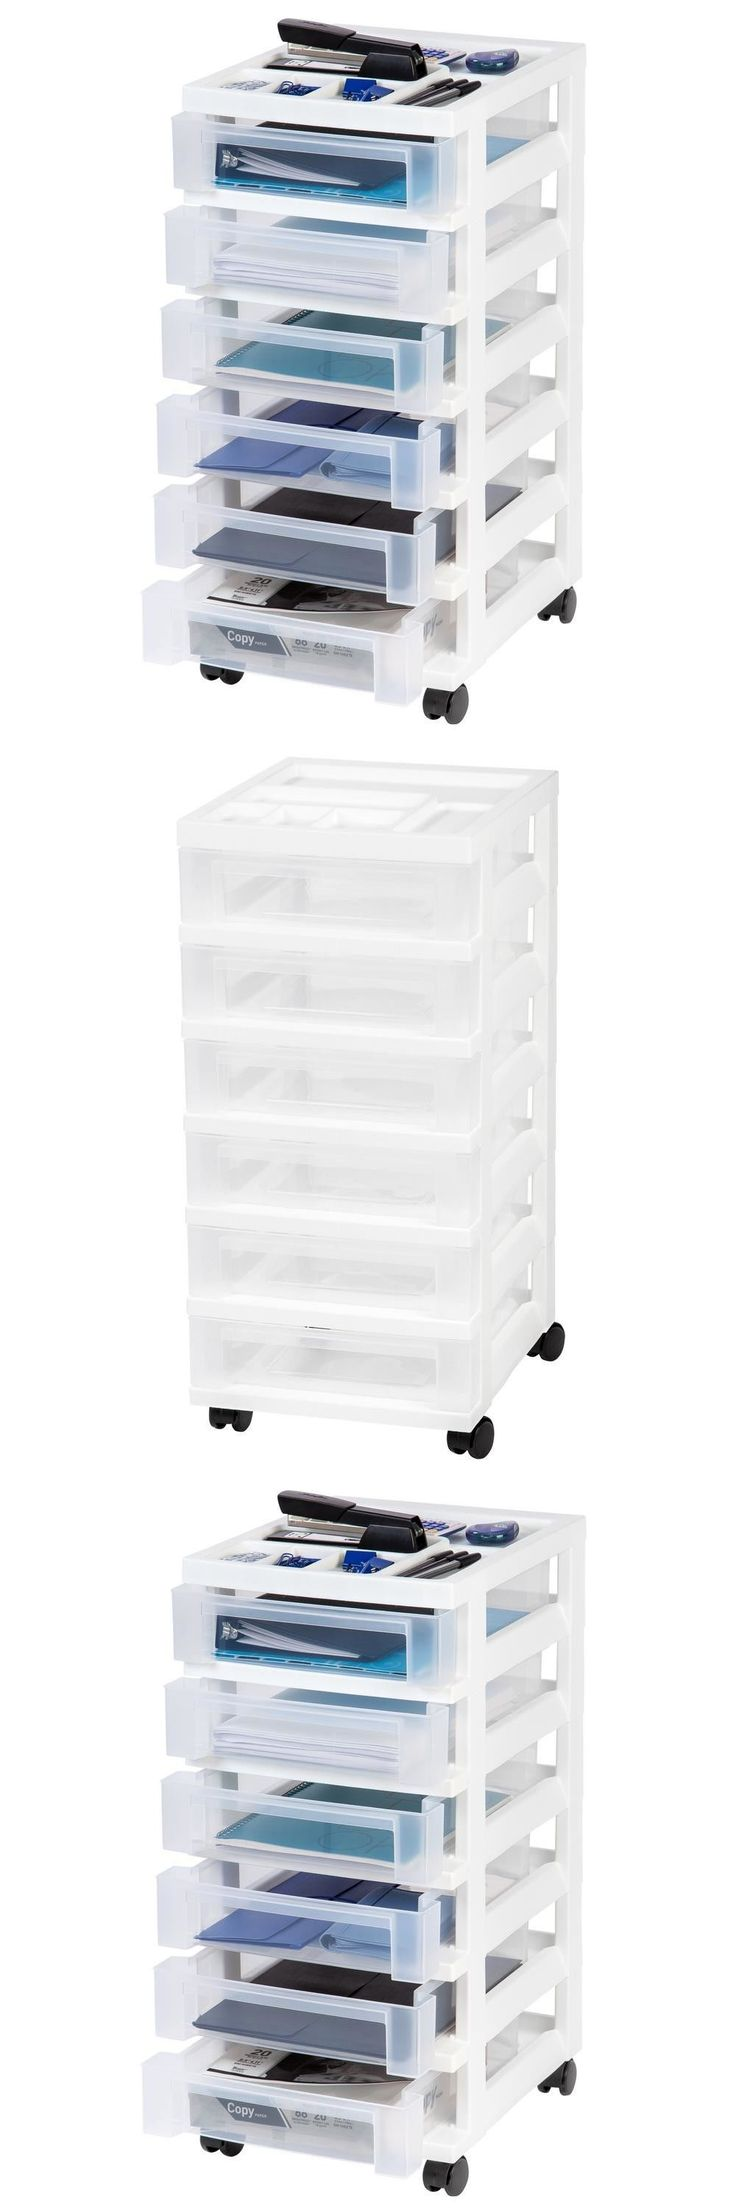 White tilt out clothes storage basket bin bathroom drawer ebay - Storage Bins And Baskets 159898 Storage Bin 6 Drawer Organizer Plastic Cabinet 68 Qt White